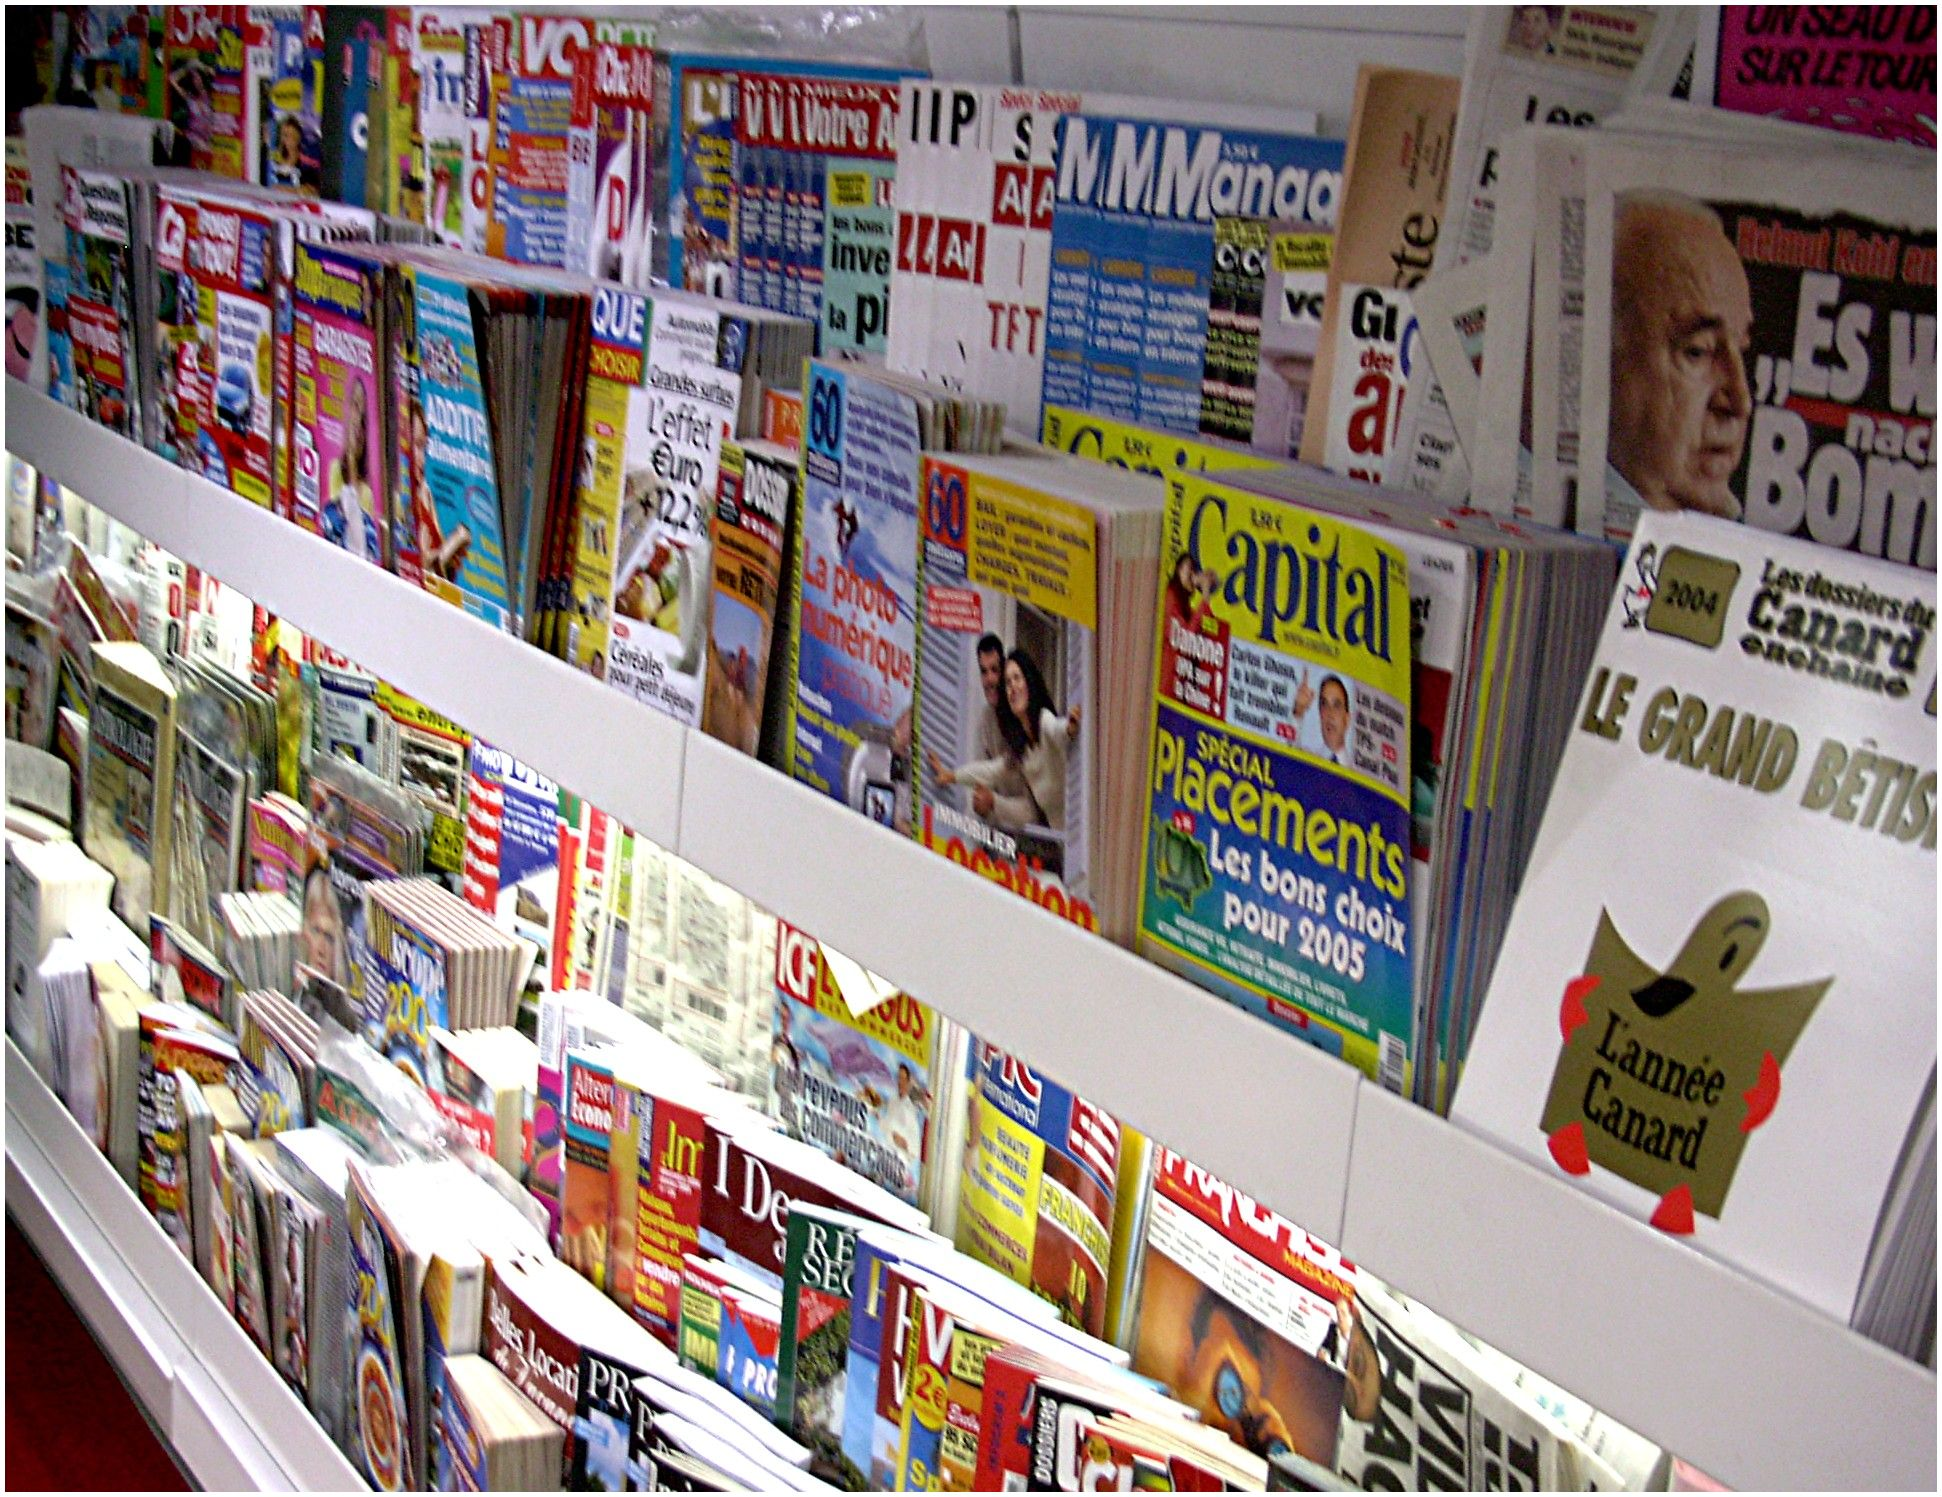 Most Circulated Magazine List Of Magazines by Circulation